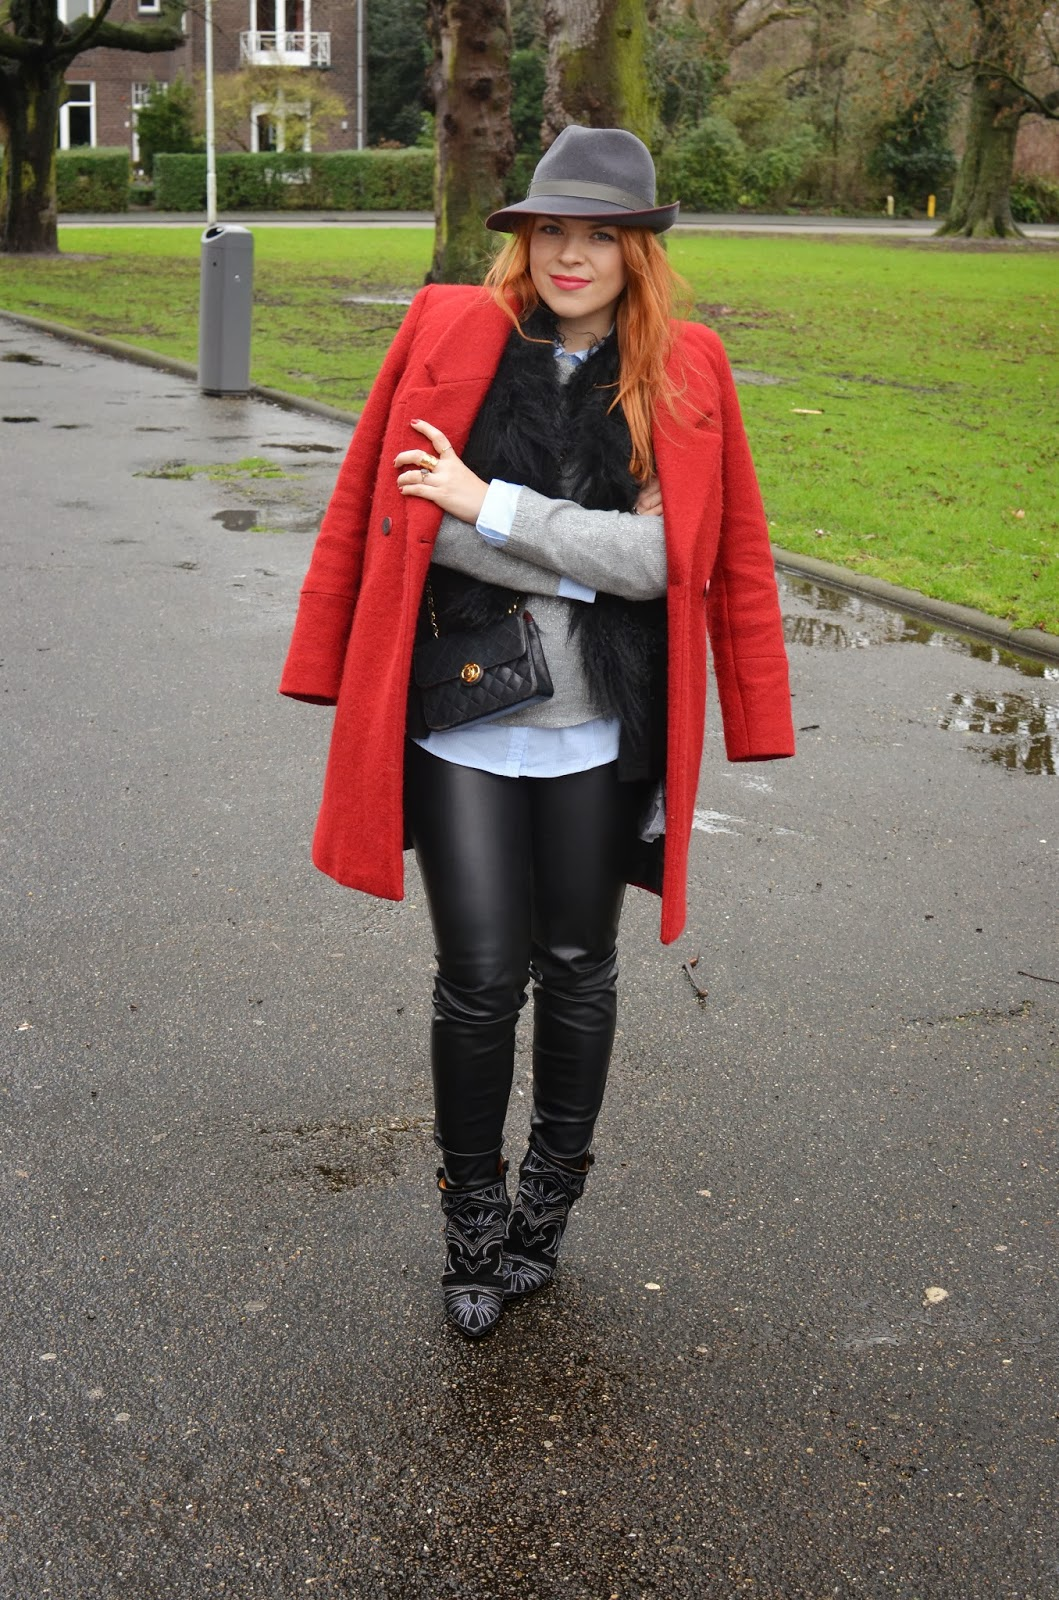 fashion-bridge, fashion bridge, fashion bridge blog, fashion-bridge.blogspot.com, street style, dutch street style, dutch street fashion, street fashion, street style Netherlands, vintage Chanel, vintage Chanel bags, handcrafted hats, Isabel Marant boots